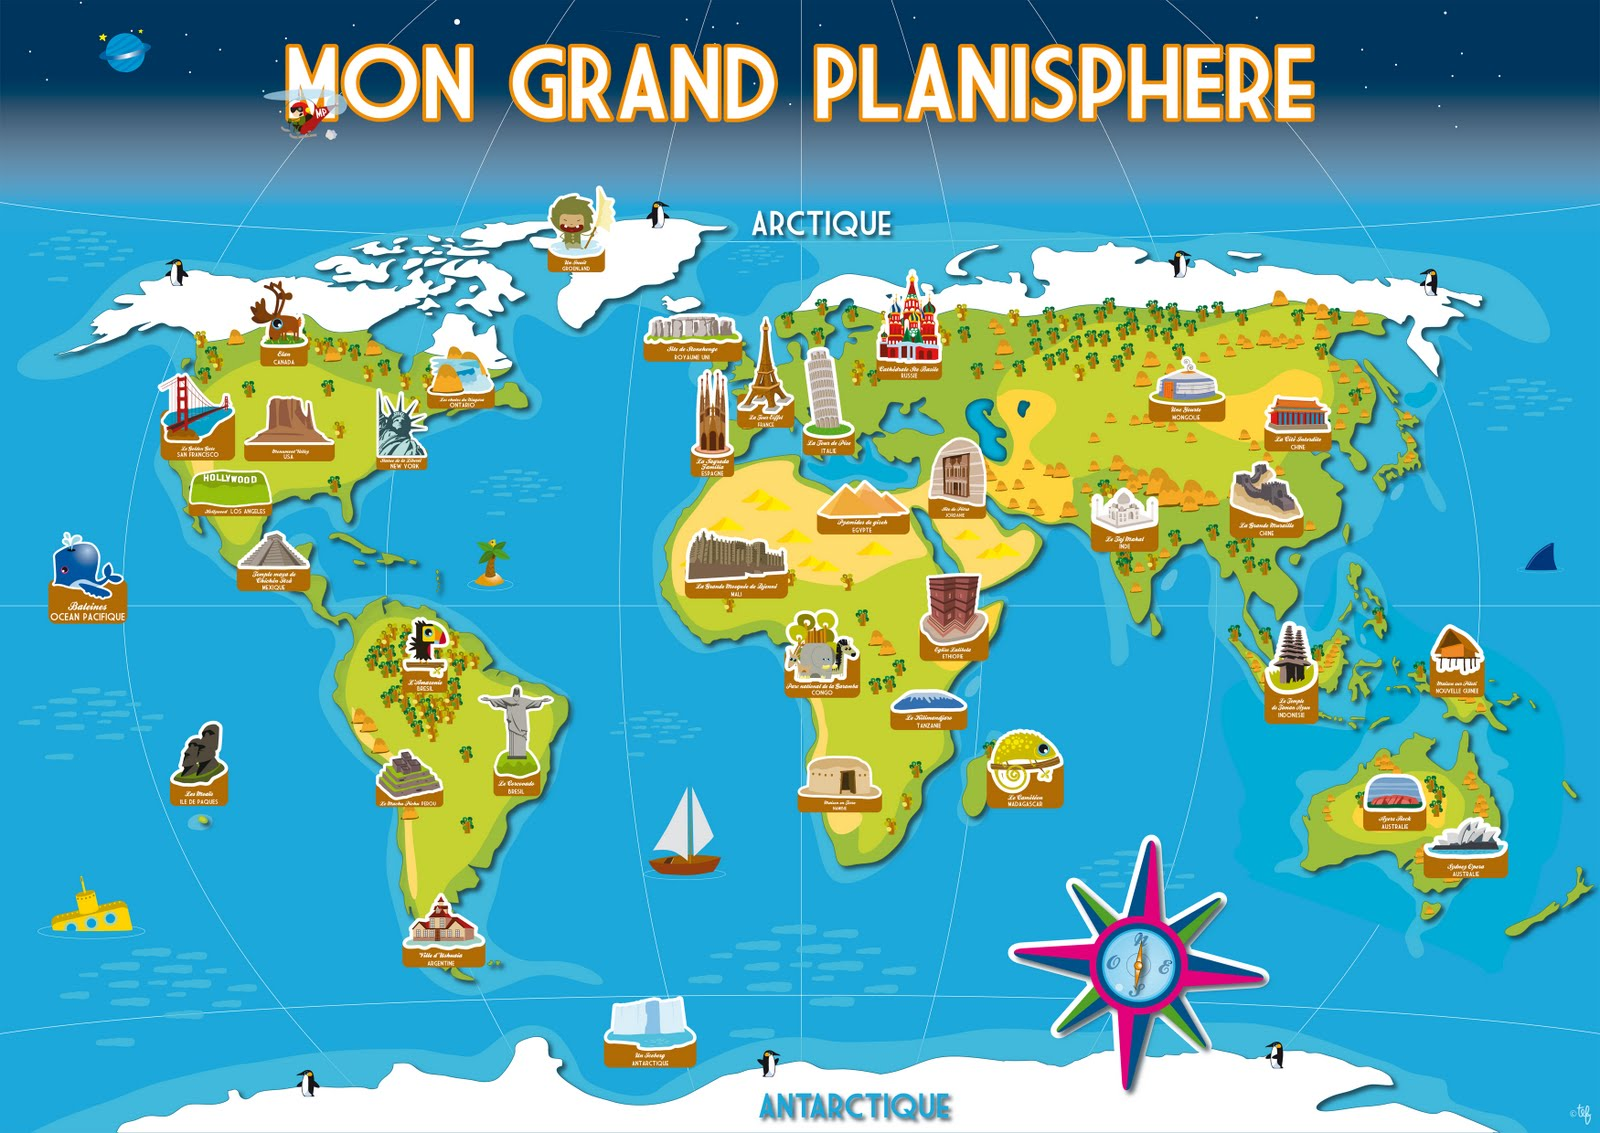 Tef graphiste illustrateur enfant 0609474204 tefgraph planisphere et monuments for Planisphere enfant